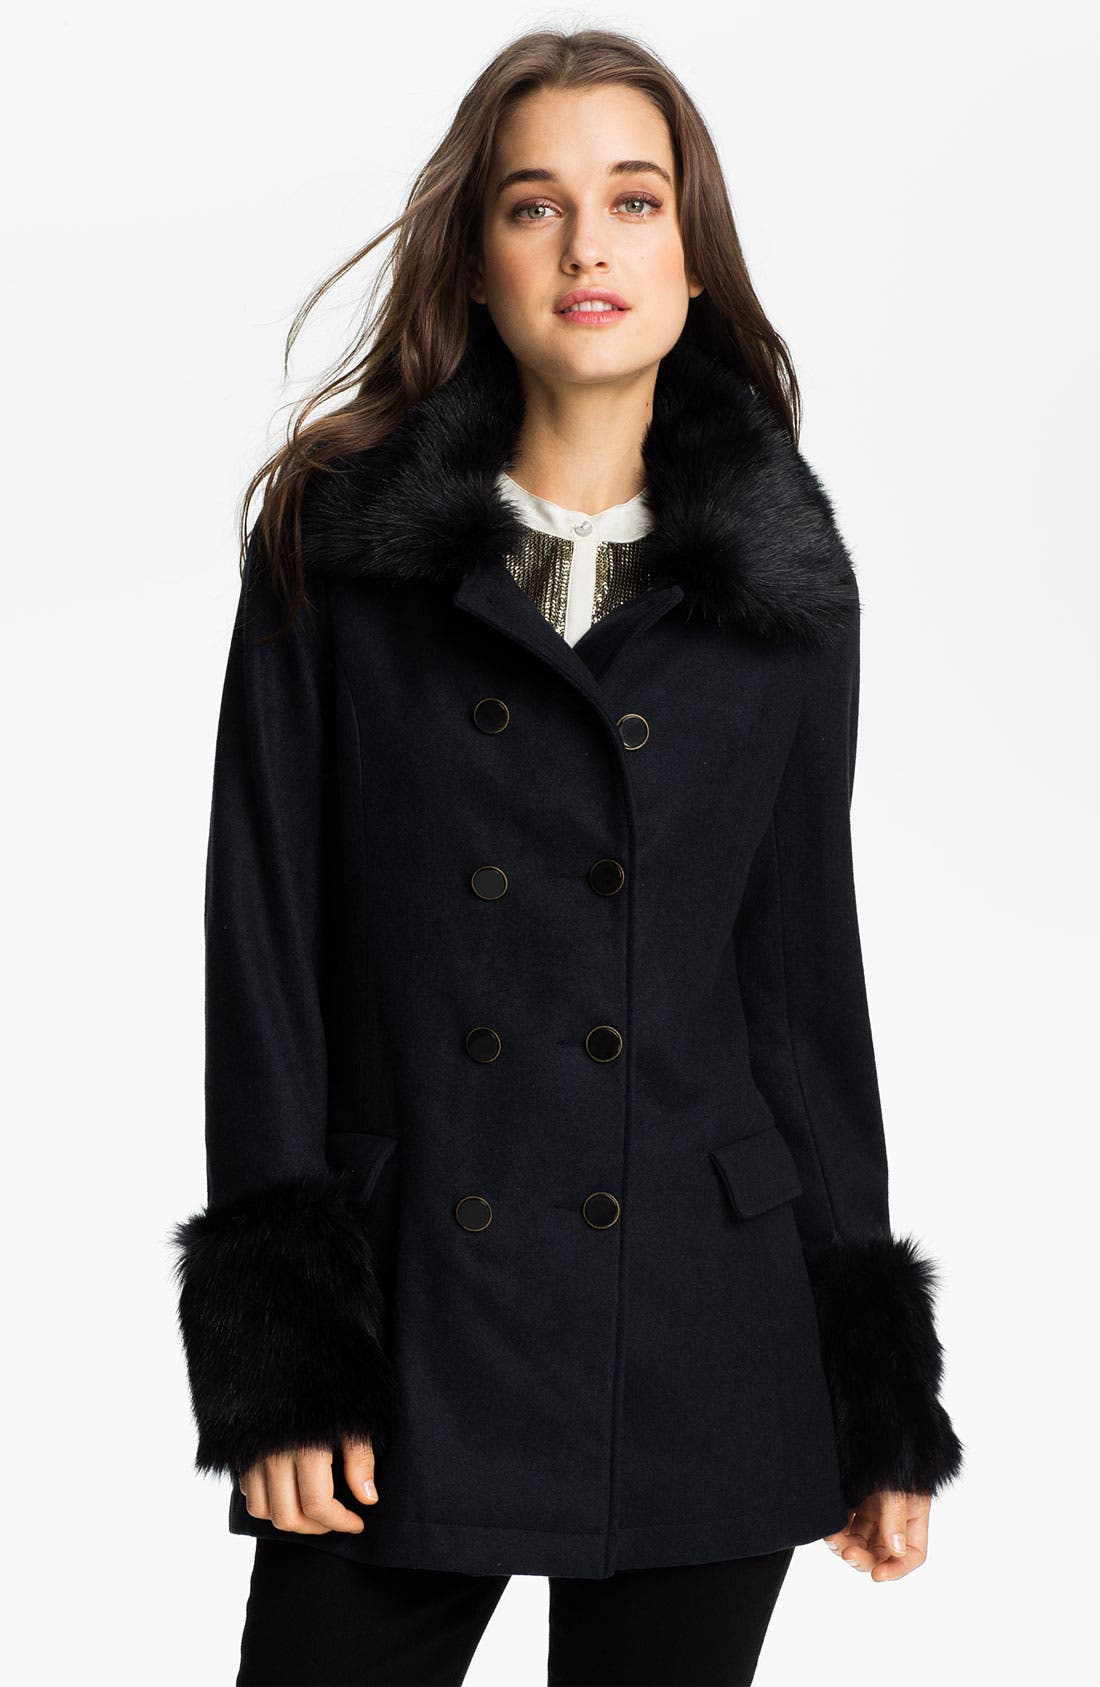 Alternate Image 1 Selected - Ella Moss 'Salem' Faux Fur Trim Jacket